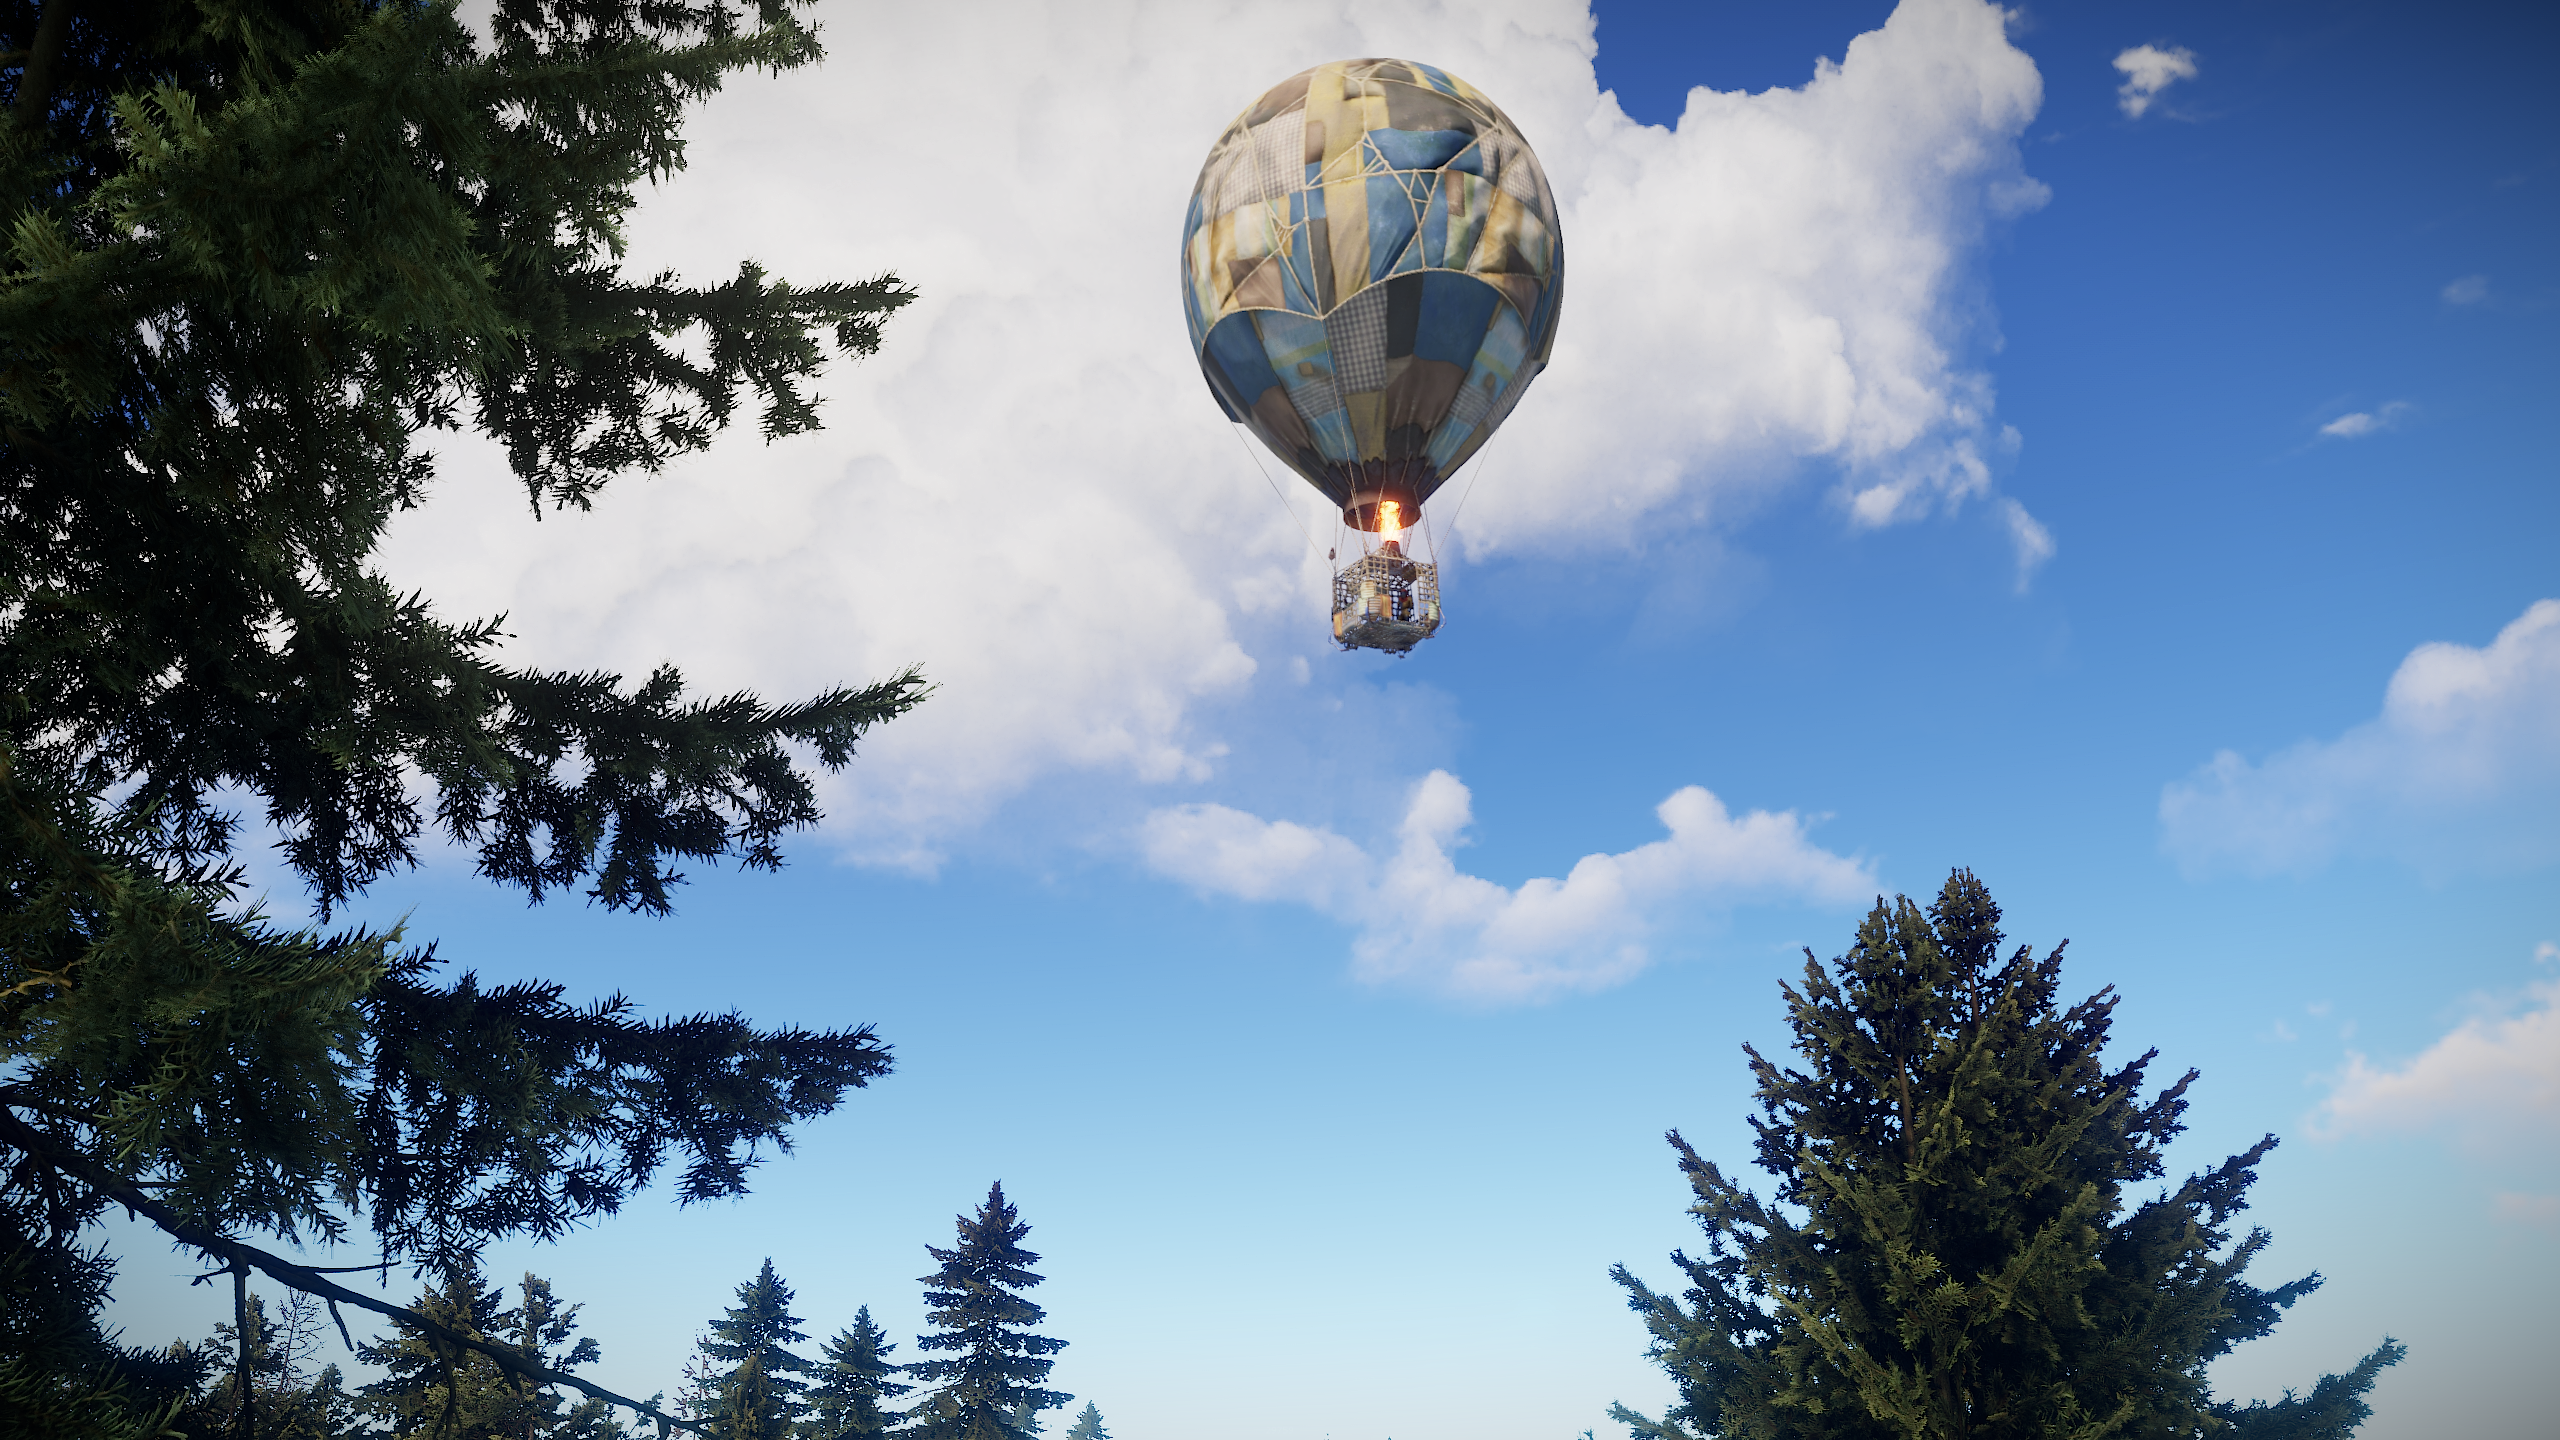 The_Hot_Air_Balloon_Update_3.png